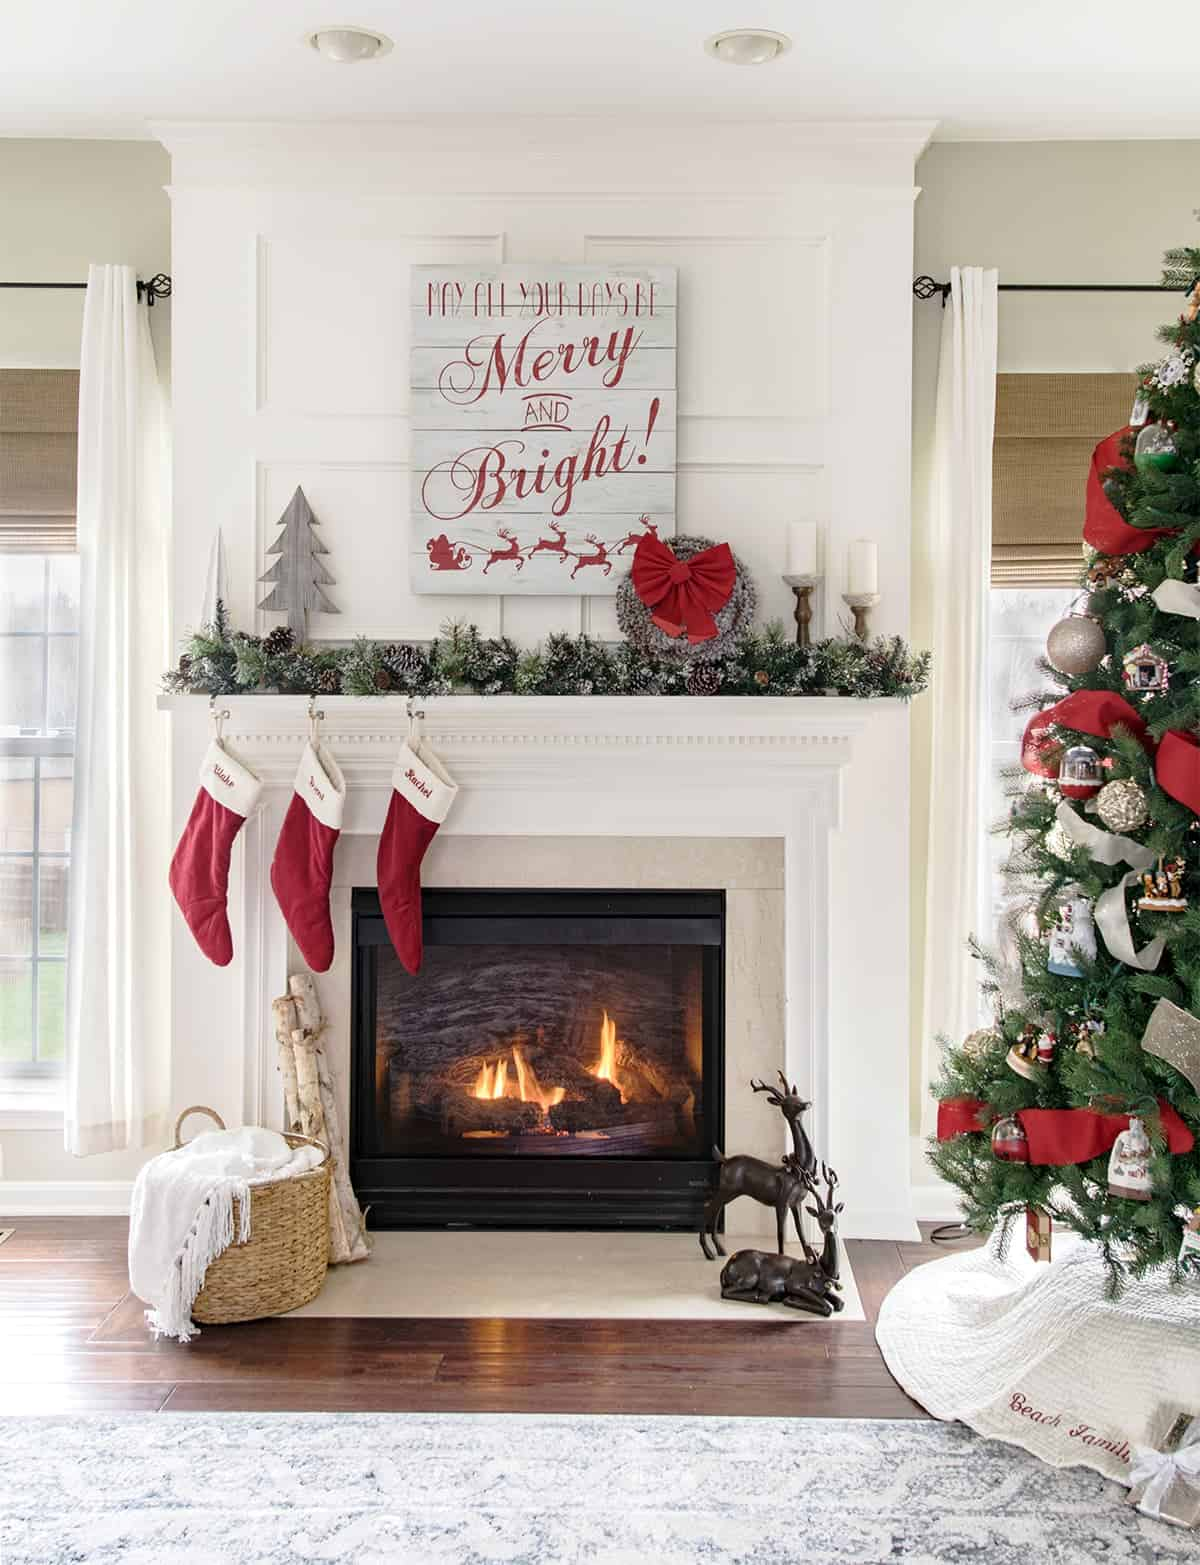 Traditional Christmas mantle and living room decor with garland, stockings and Christmas tree.